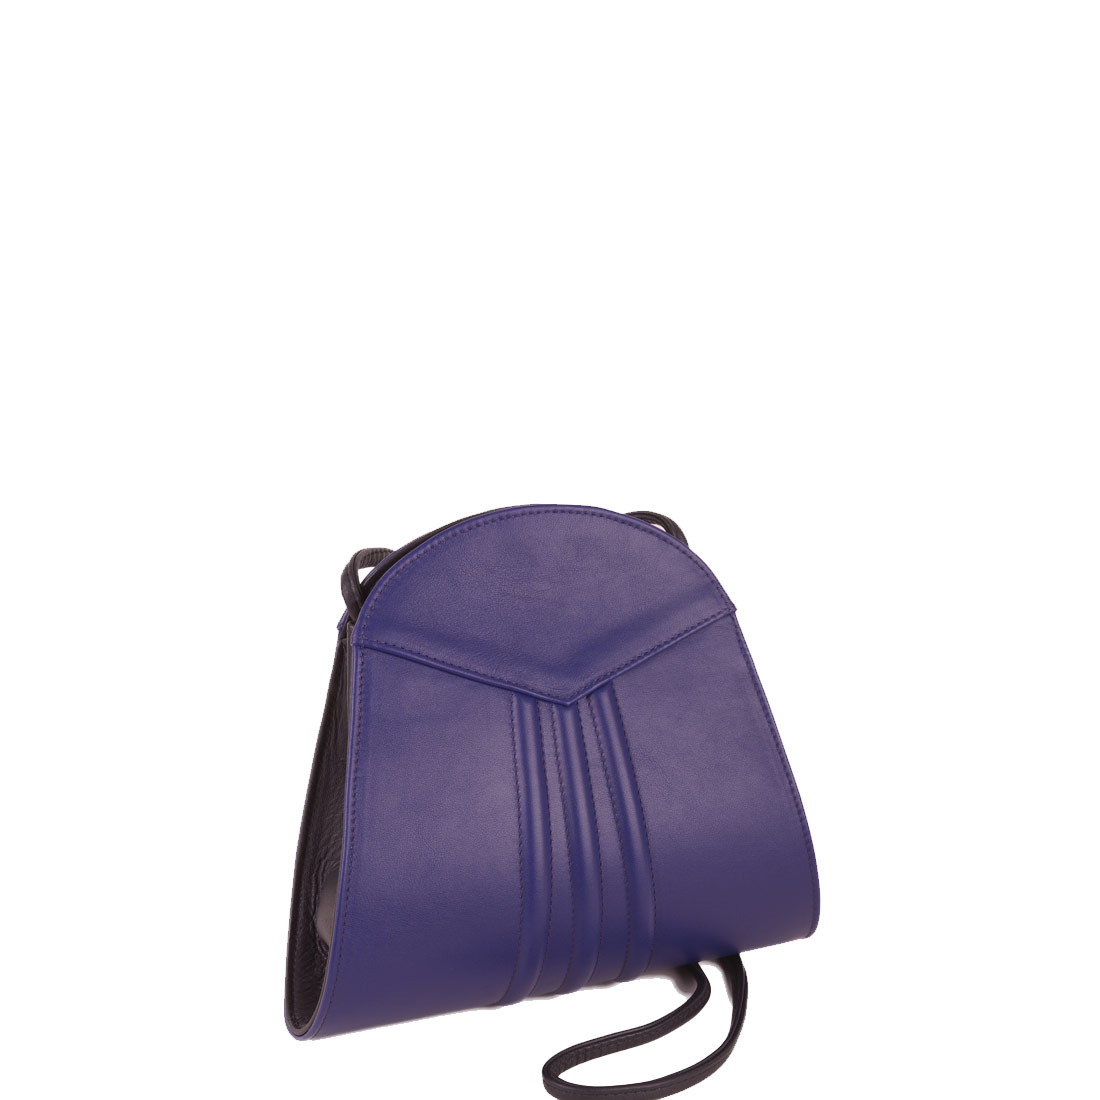 Ivy Violet Blue Leather Shoulder Bag